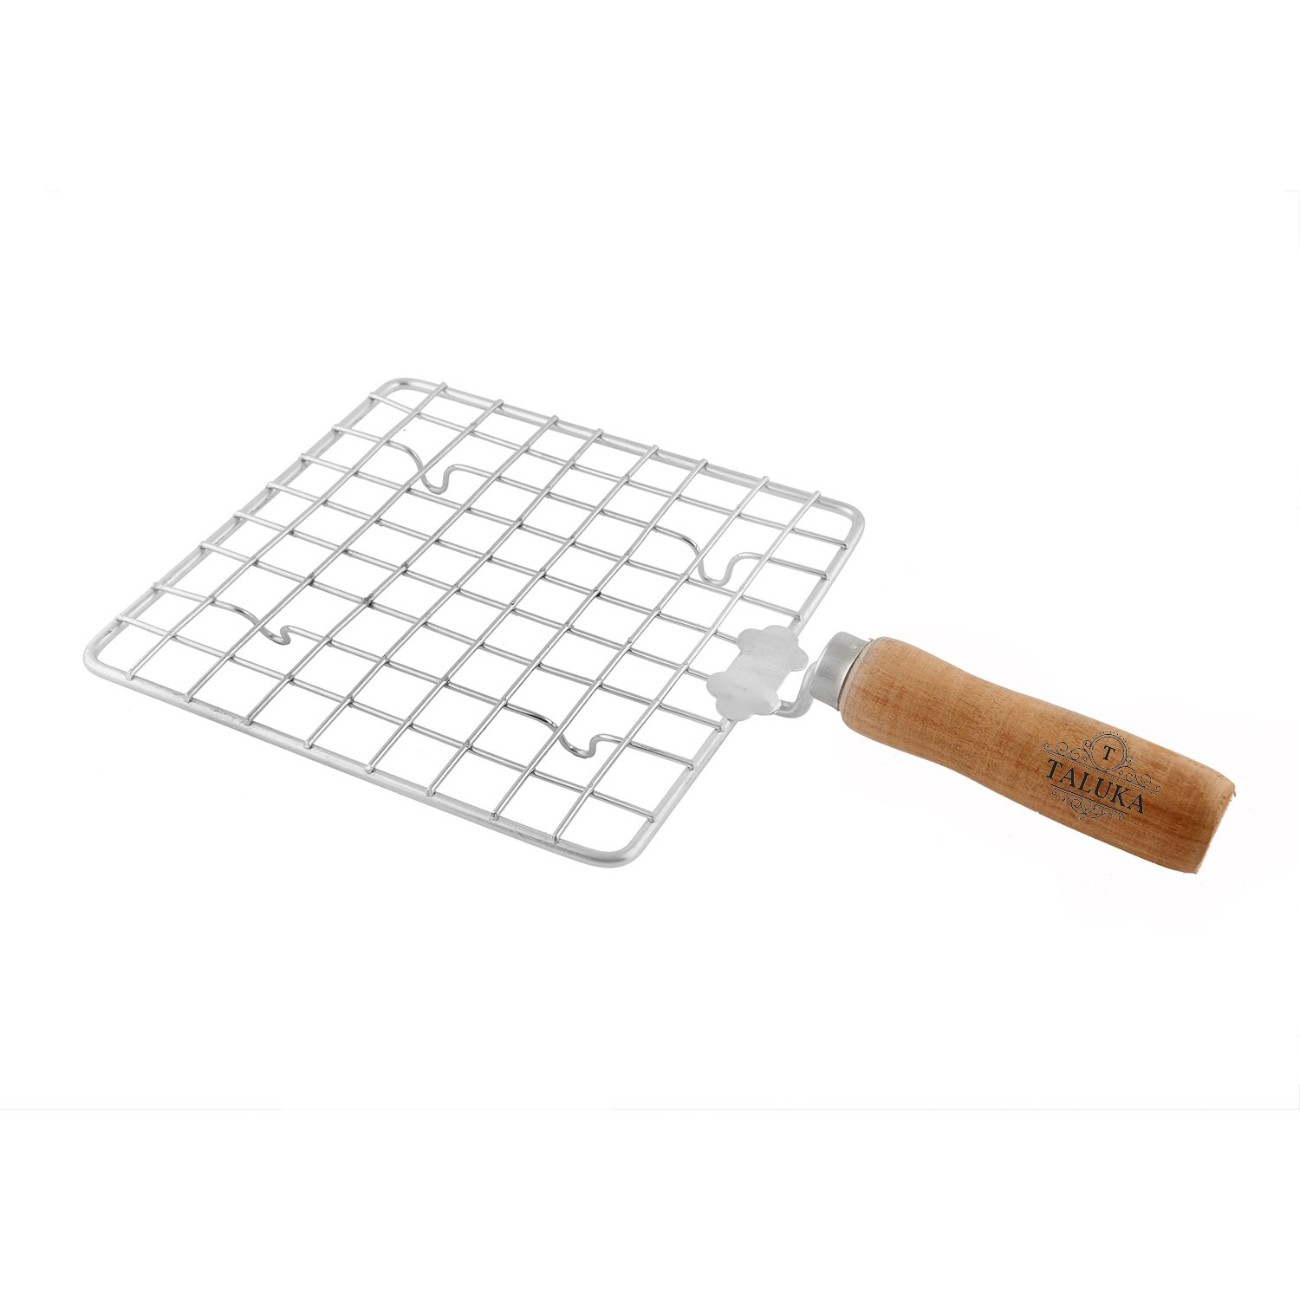 Stainless Steel Made Square Papad Jali Papad Maker  Wooden Handle